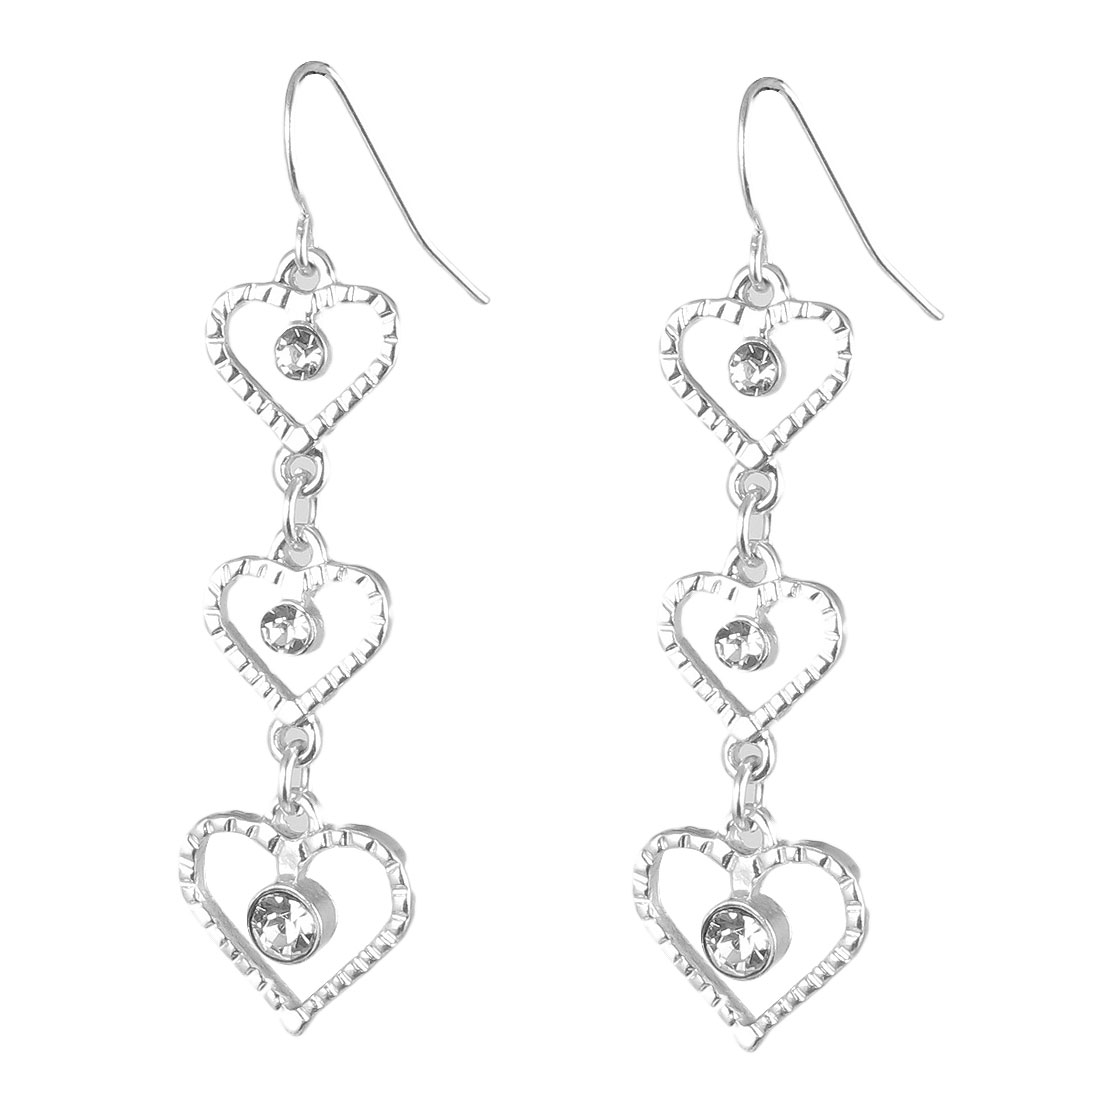 "Women Metal Three Hollow Out Hearts Shape Connect Design Dangling Pendant Hook Earrings Earbobs Silver Tone 2.2"" Length Pair"